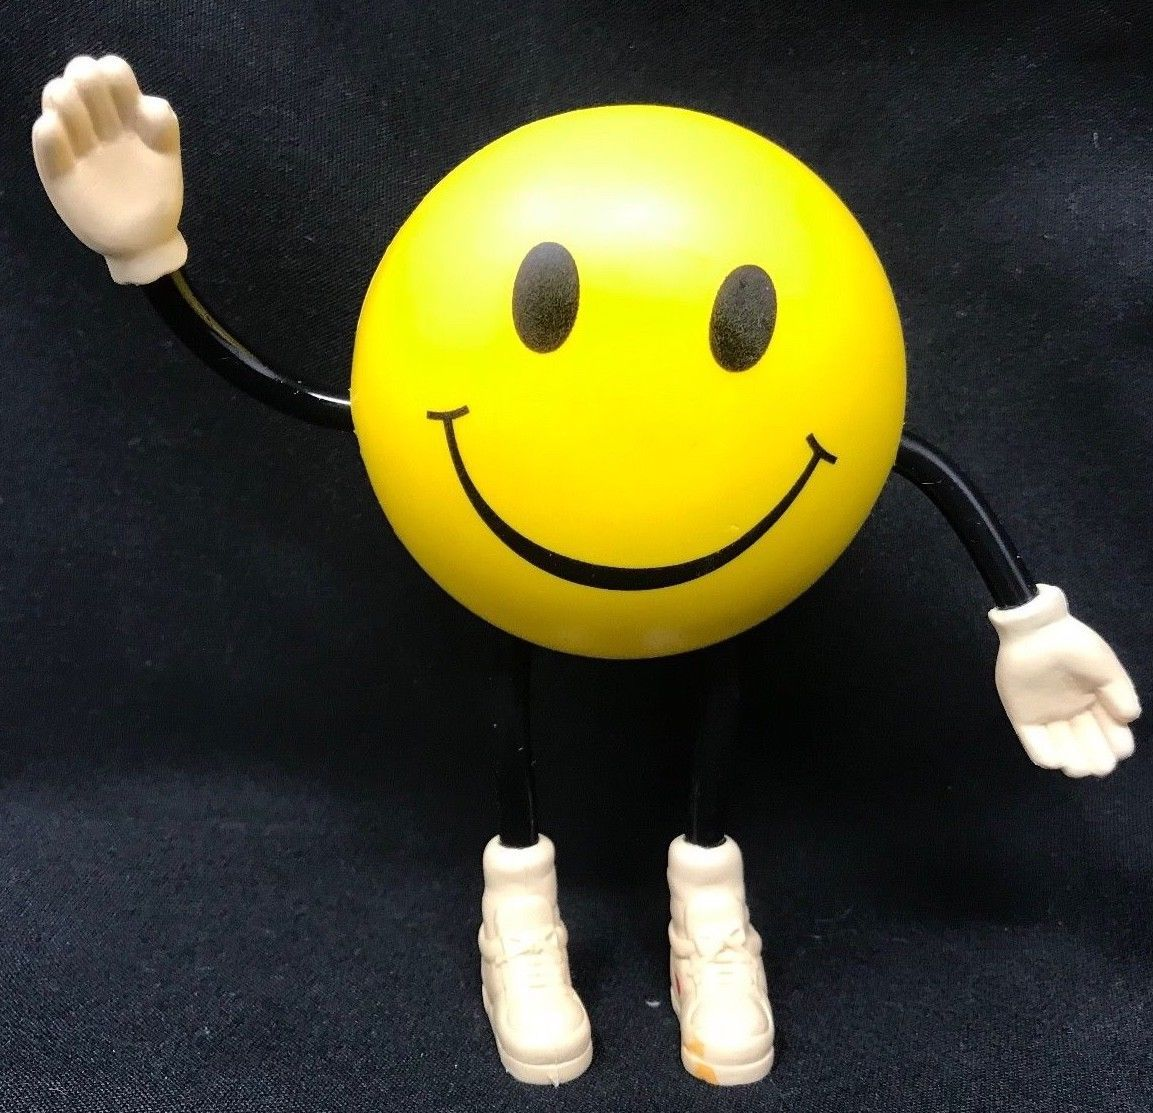 Vintage 1996 Players Island Casino Smiley Face Figurine Advertising Mo Rare Ebay Link Advertising Collectibles Casino Figurines